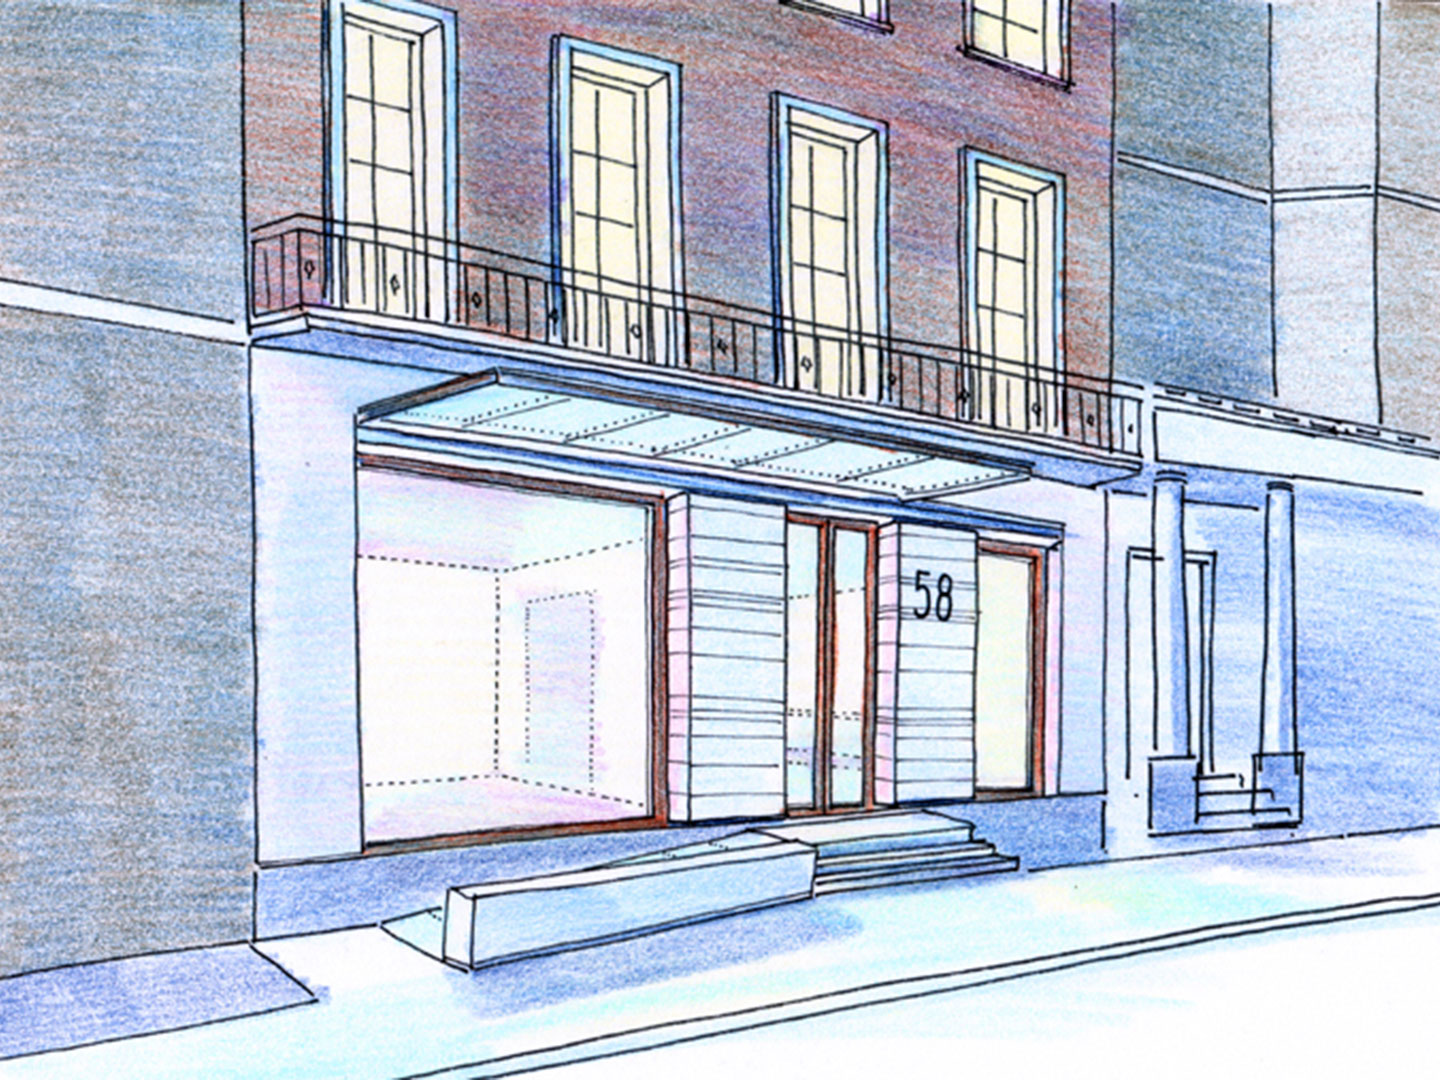 58_grosvenor_street-colour_perspective